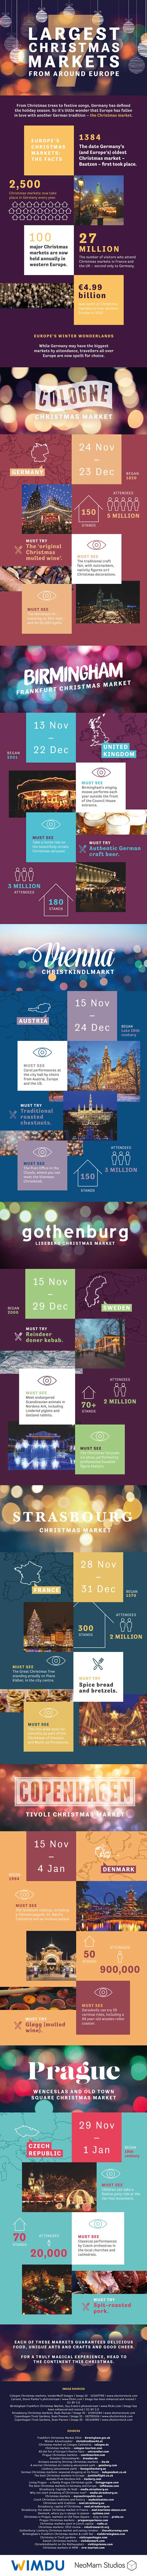 7 Largest Christmas Markets In Europe